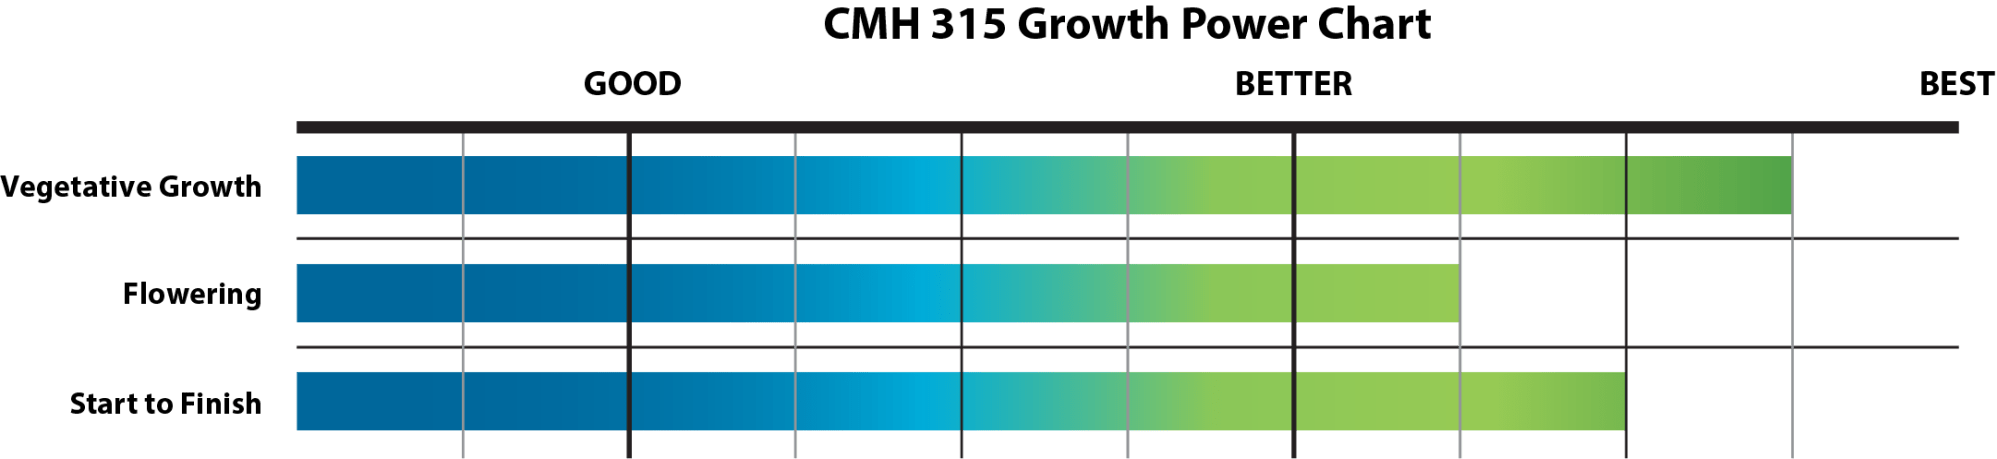 hight resolution of growth chart